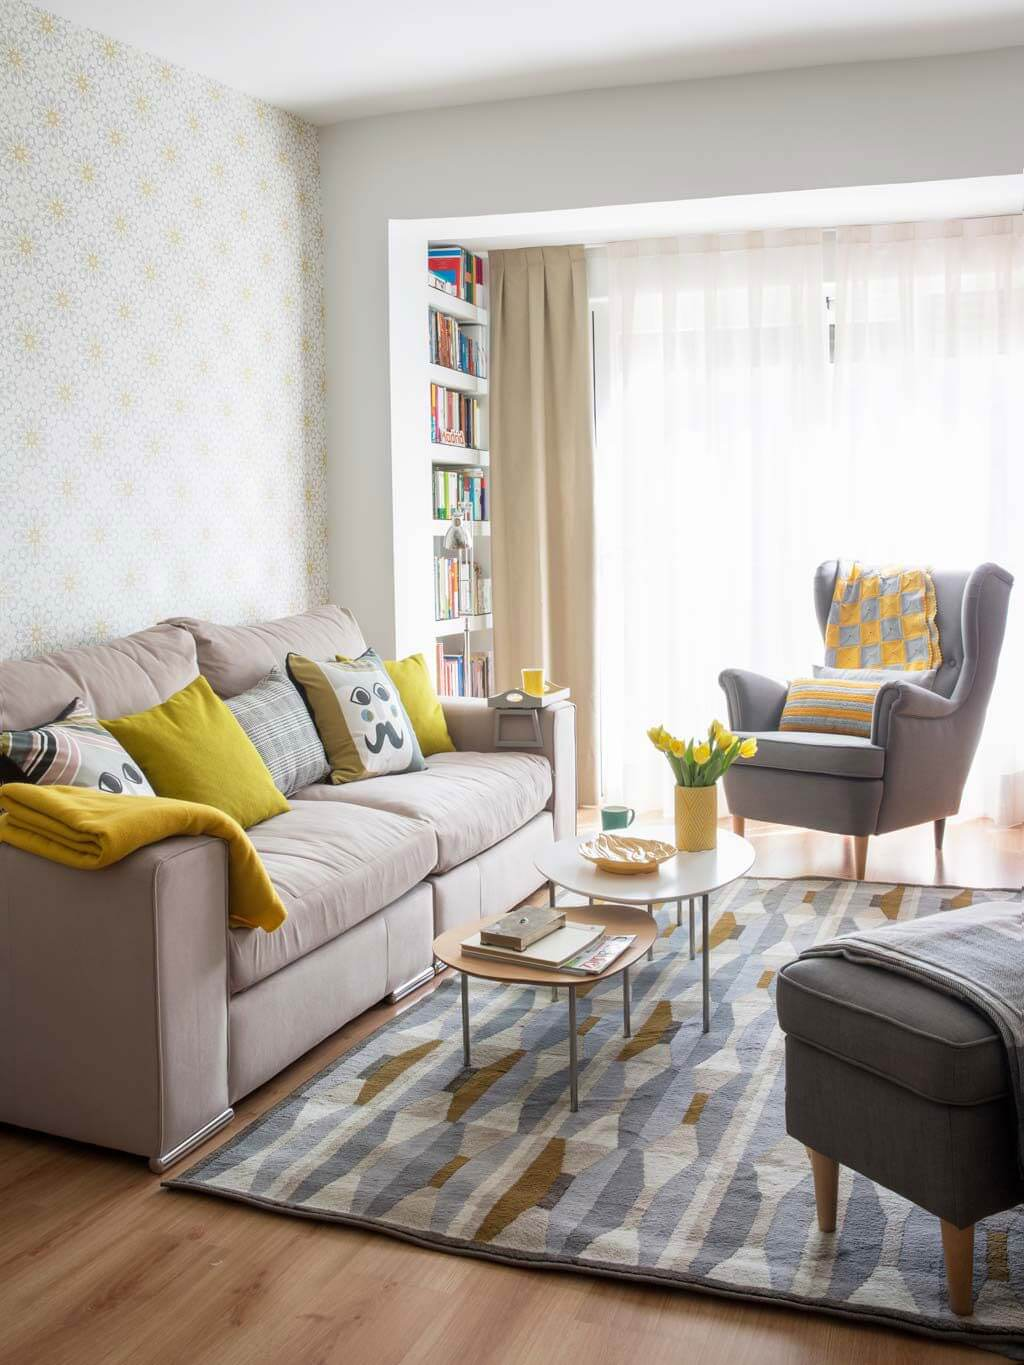 25+ Best Small Living Room Decor and Design Ideas for 2020 on Small Living Room Decorating Ideas  id=28080